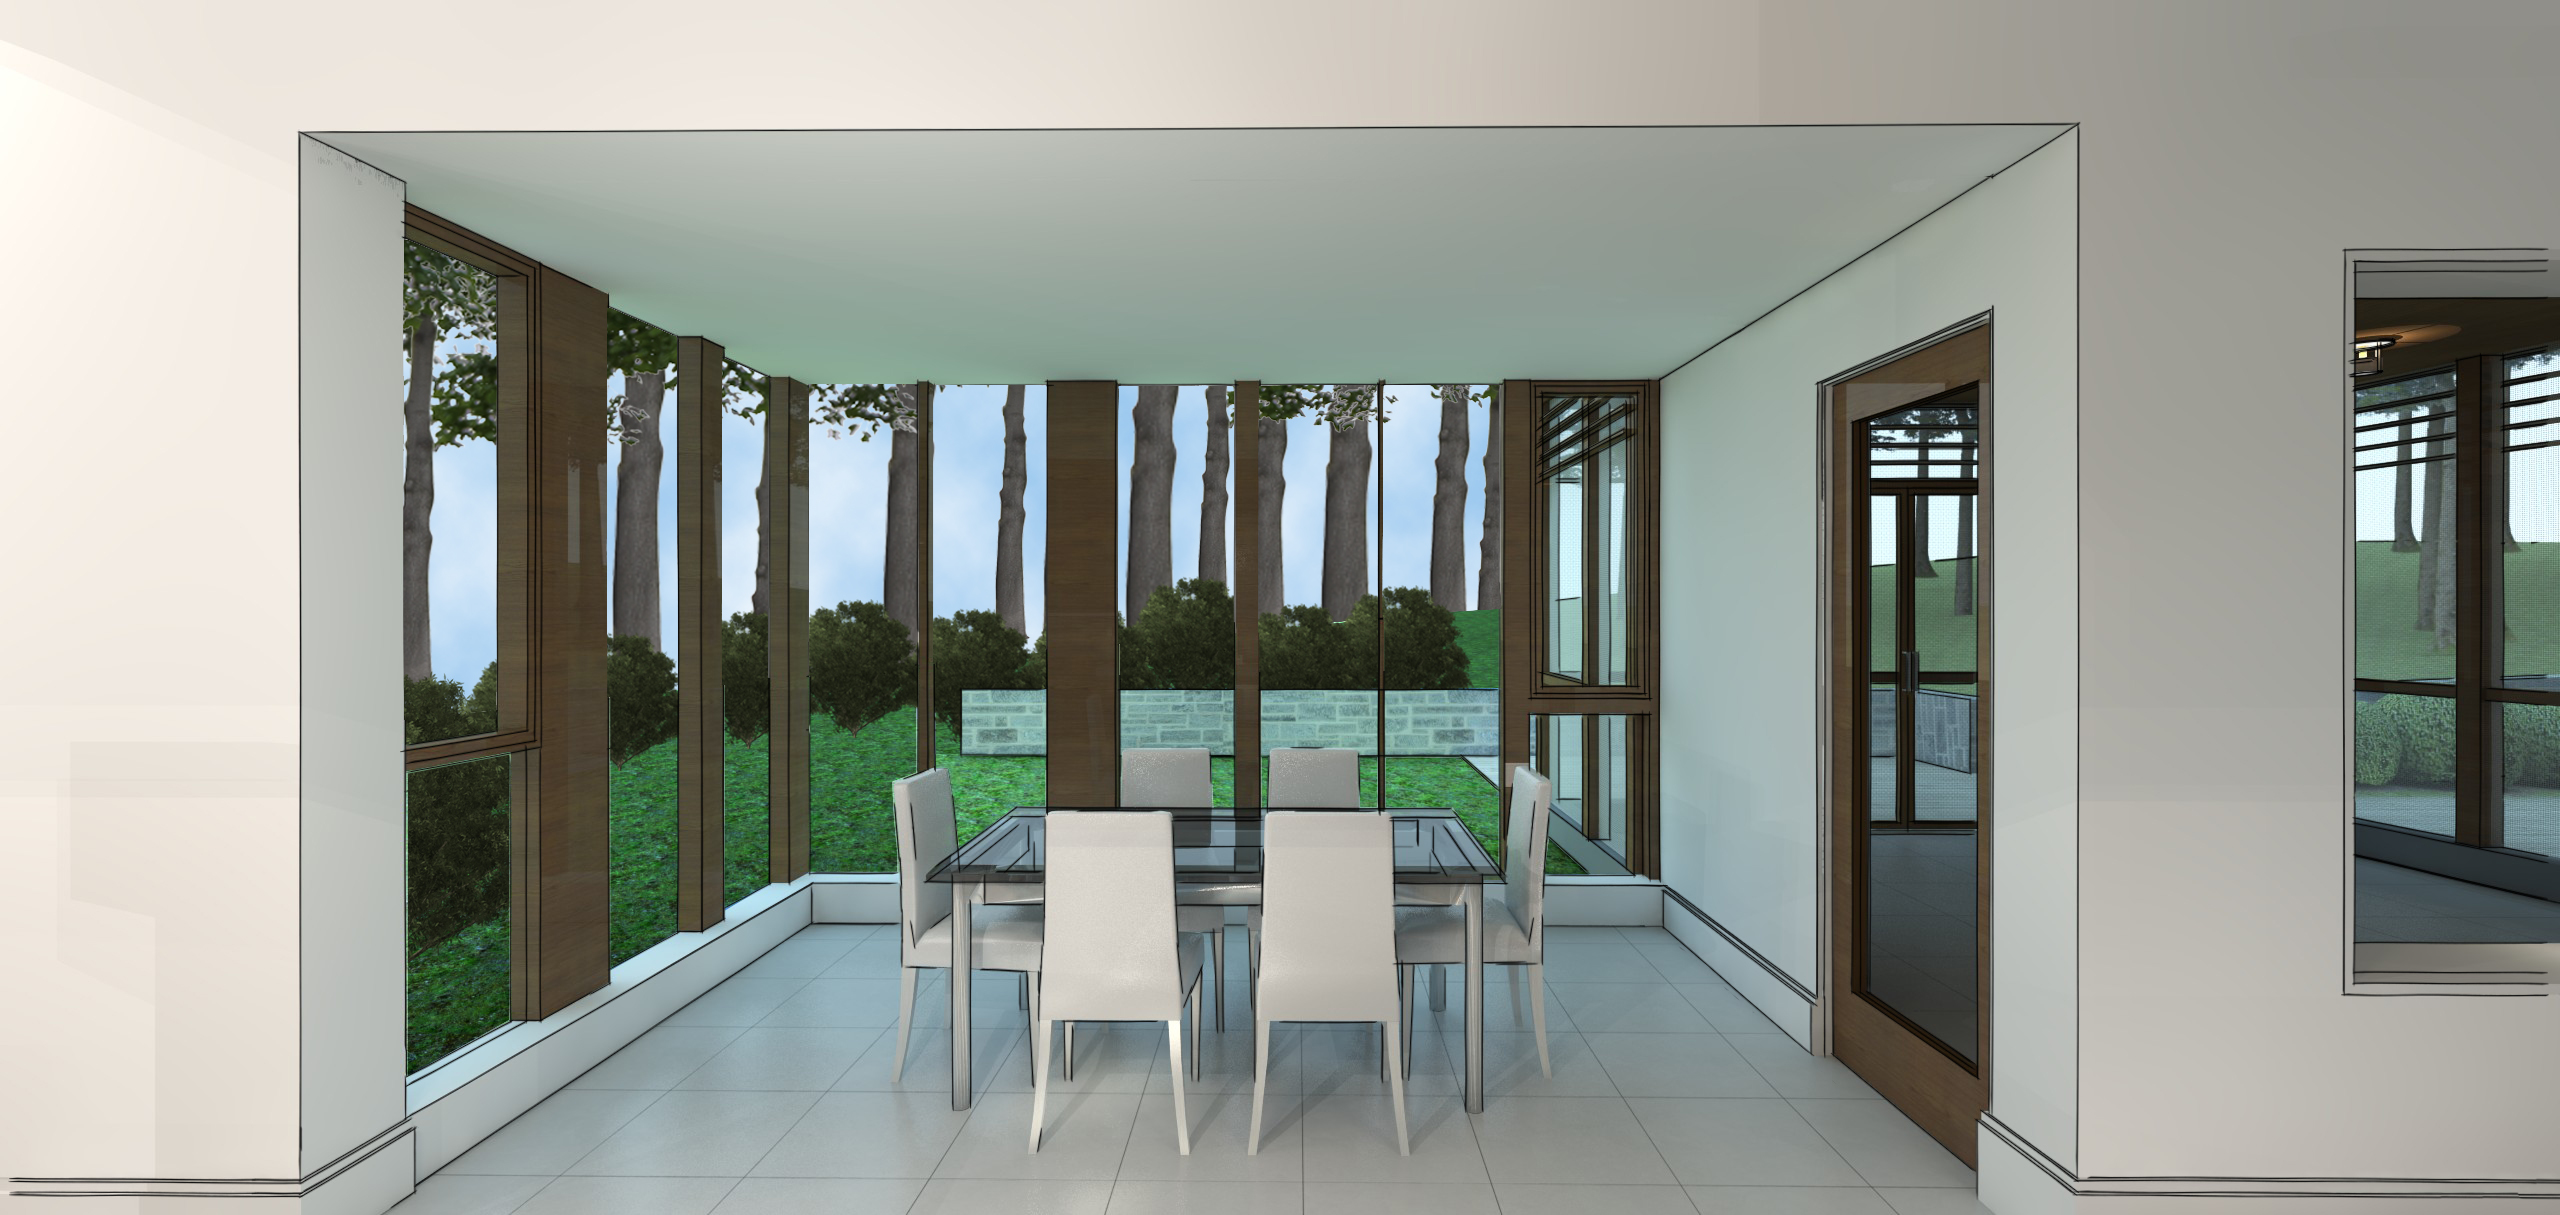 Modern residential architecture. In the breakfast room, the varying widths of posts between windows mimics the tree growth patterns beyond.